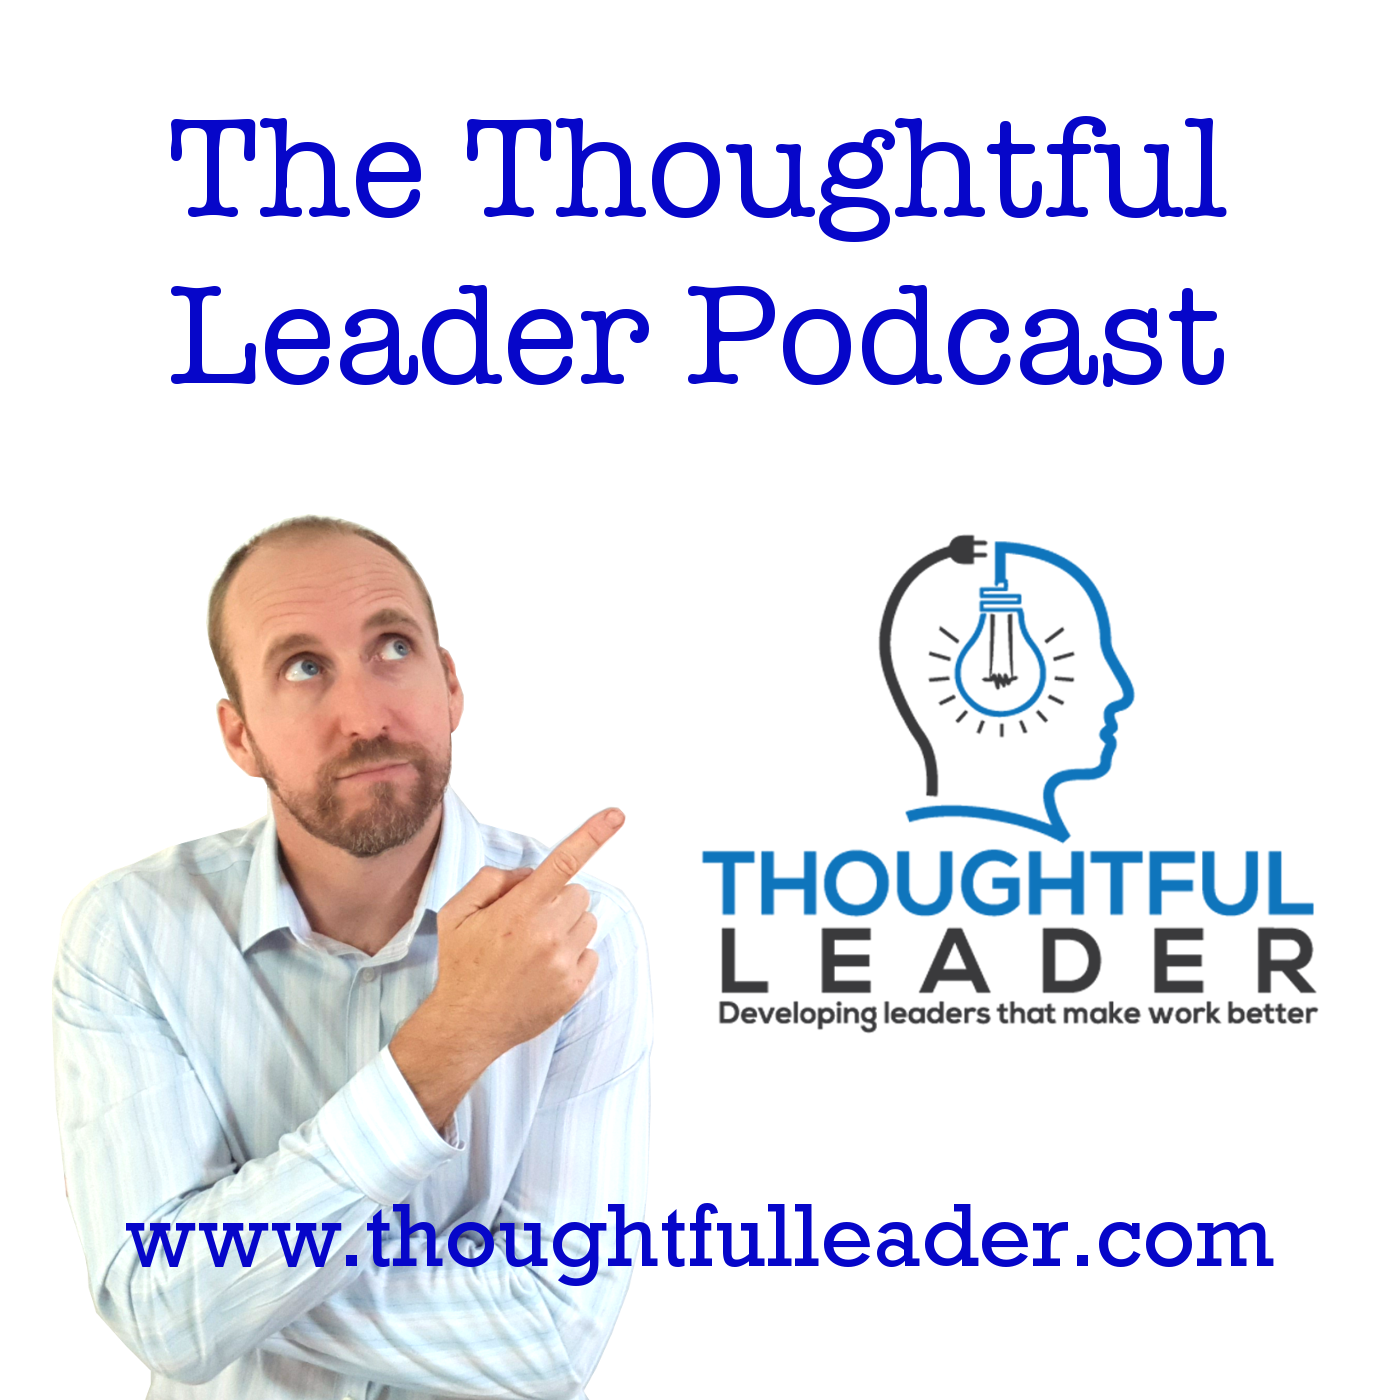 The Thoughtful Leader Podcast show art